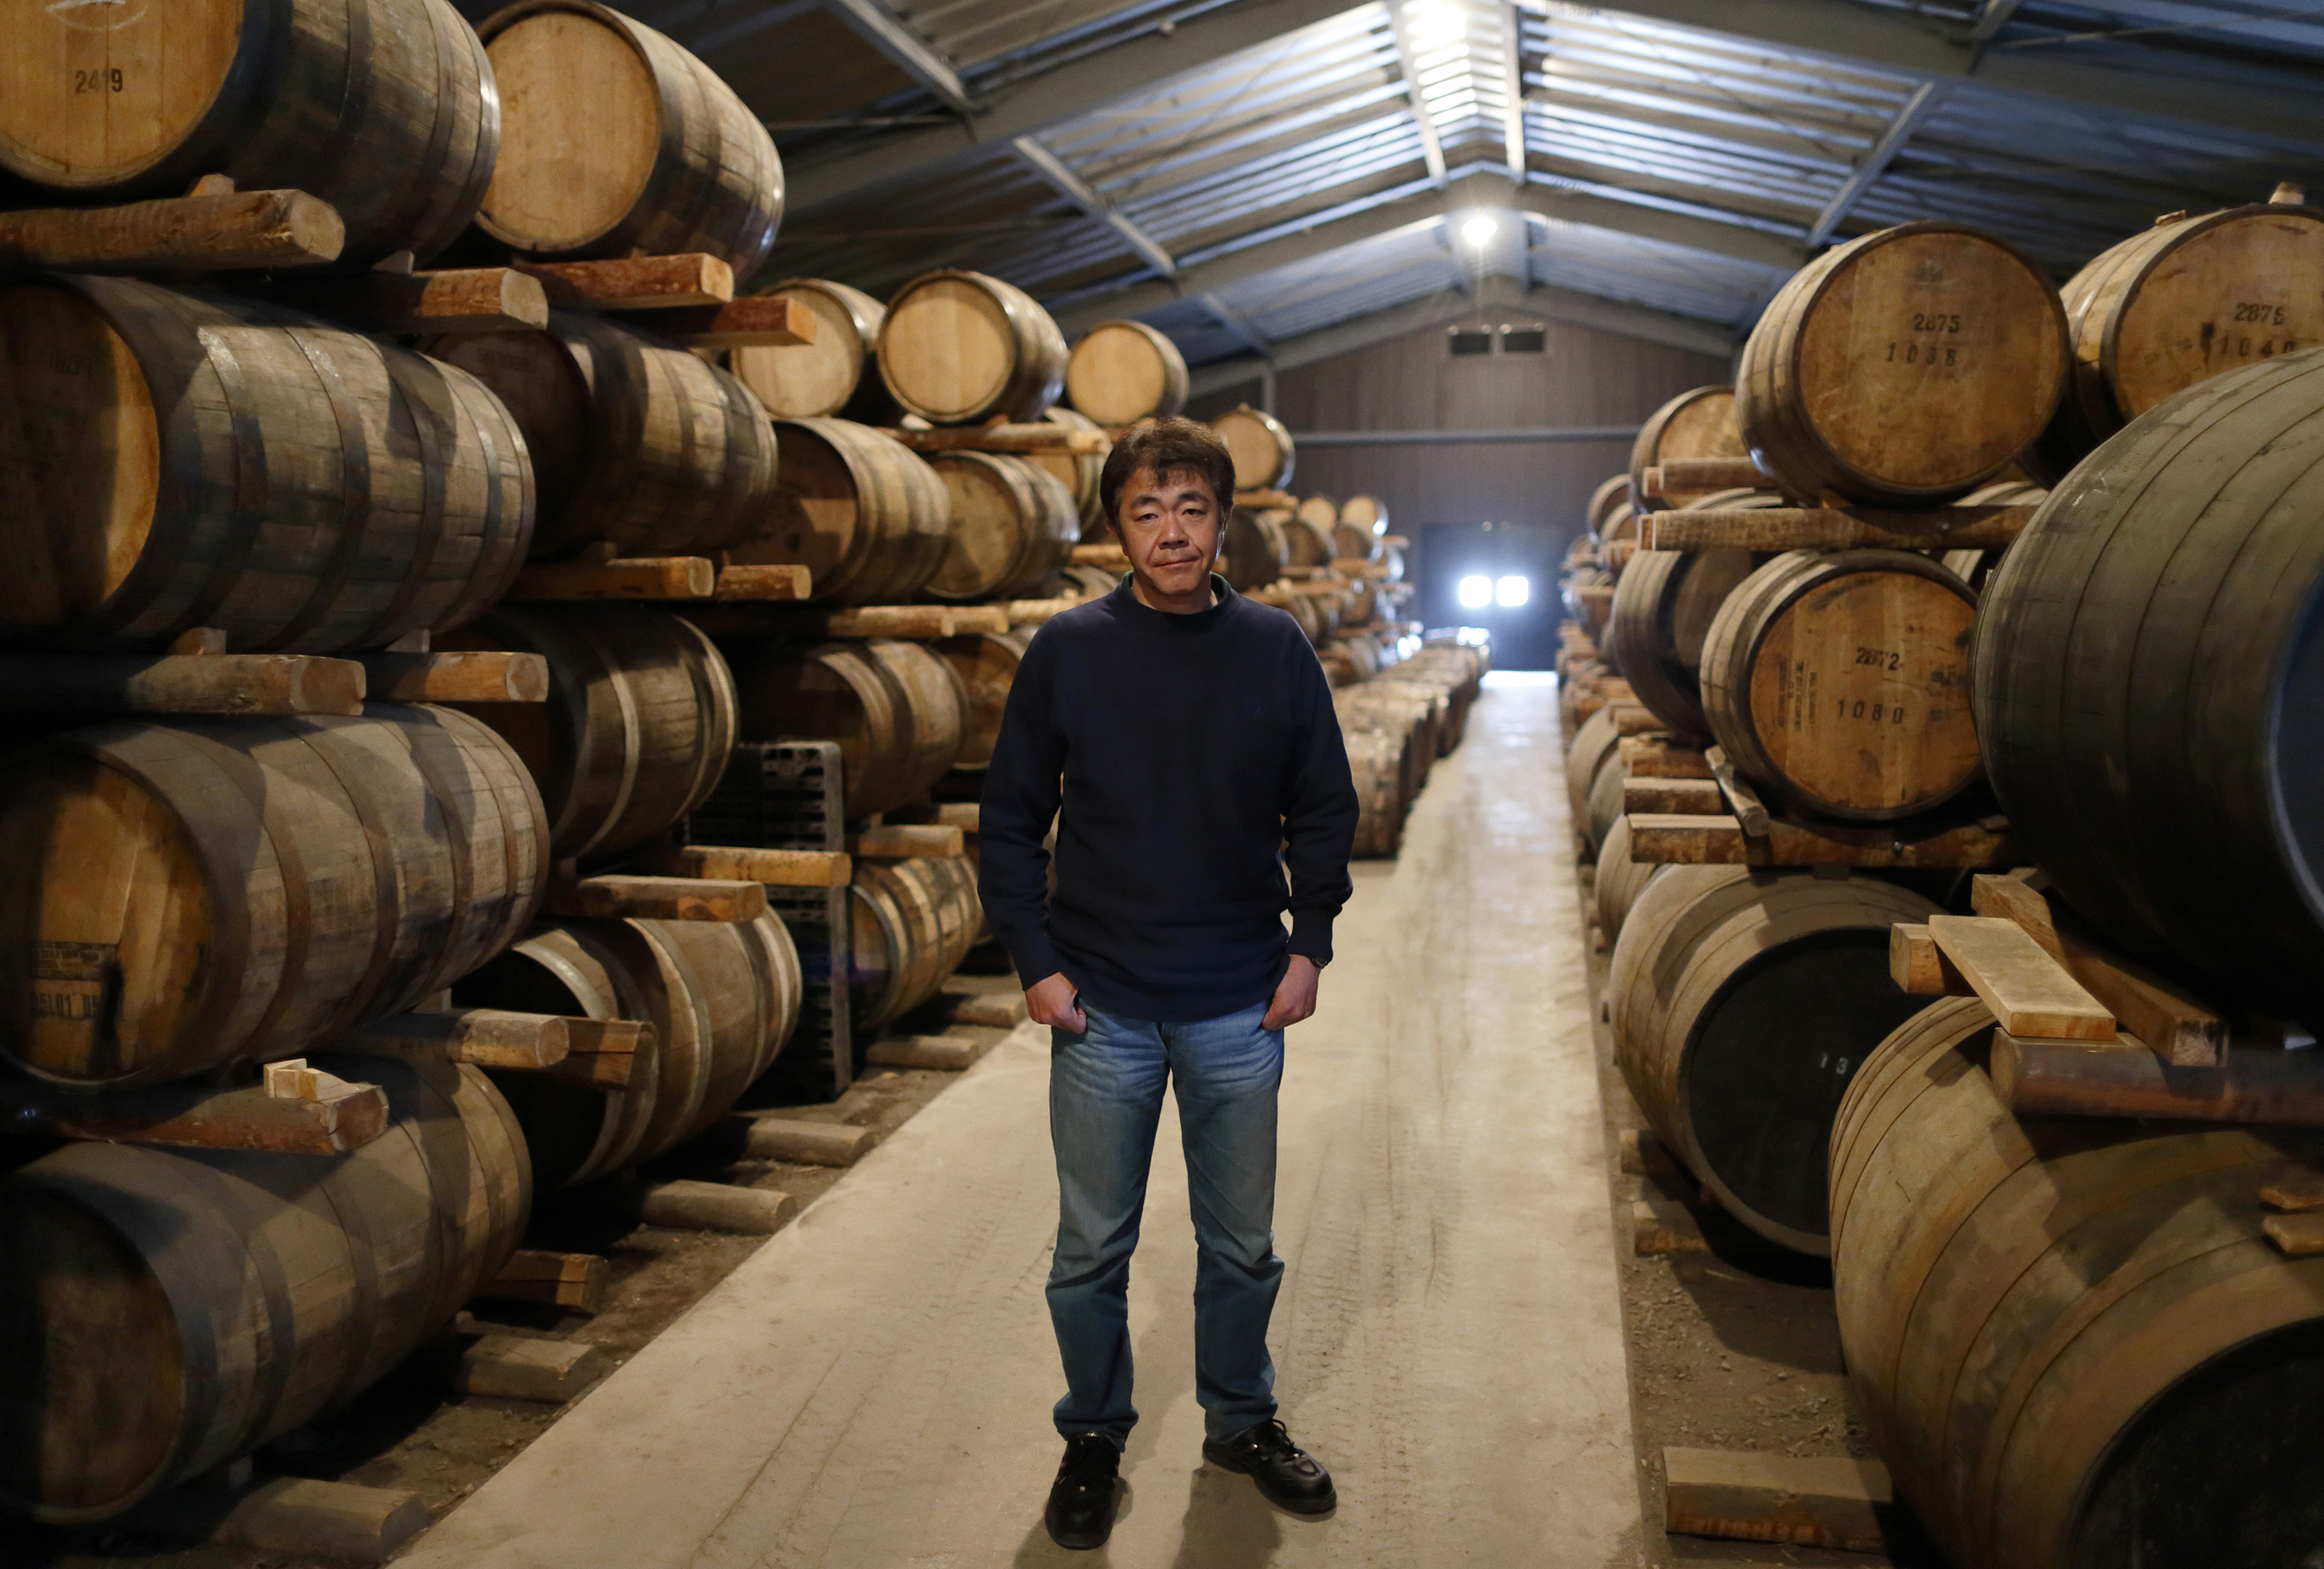 Ichiro Akuto shows off barrels of whisky at his distillery, Venture Whisky Ltd., in Chichibu, Saitama Prefecture. His single malts sell for as much as ¥100,000 a bottle. | BLOOMBERG